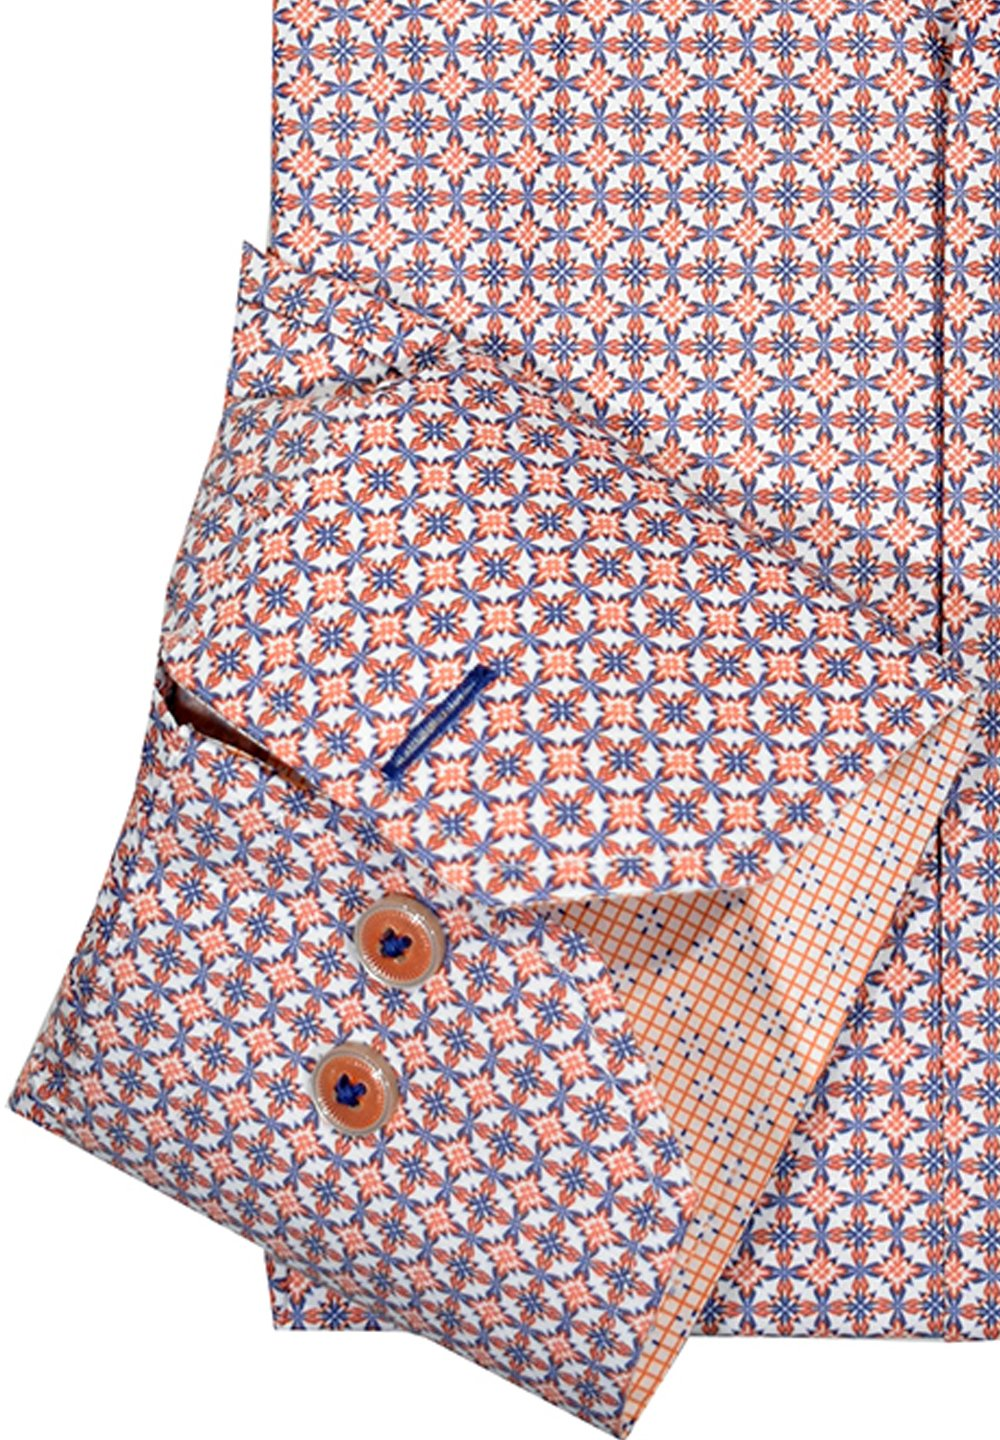 W1070 Mango Medallion Shirt - Marcello Sport